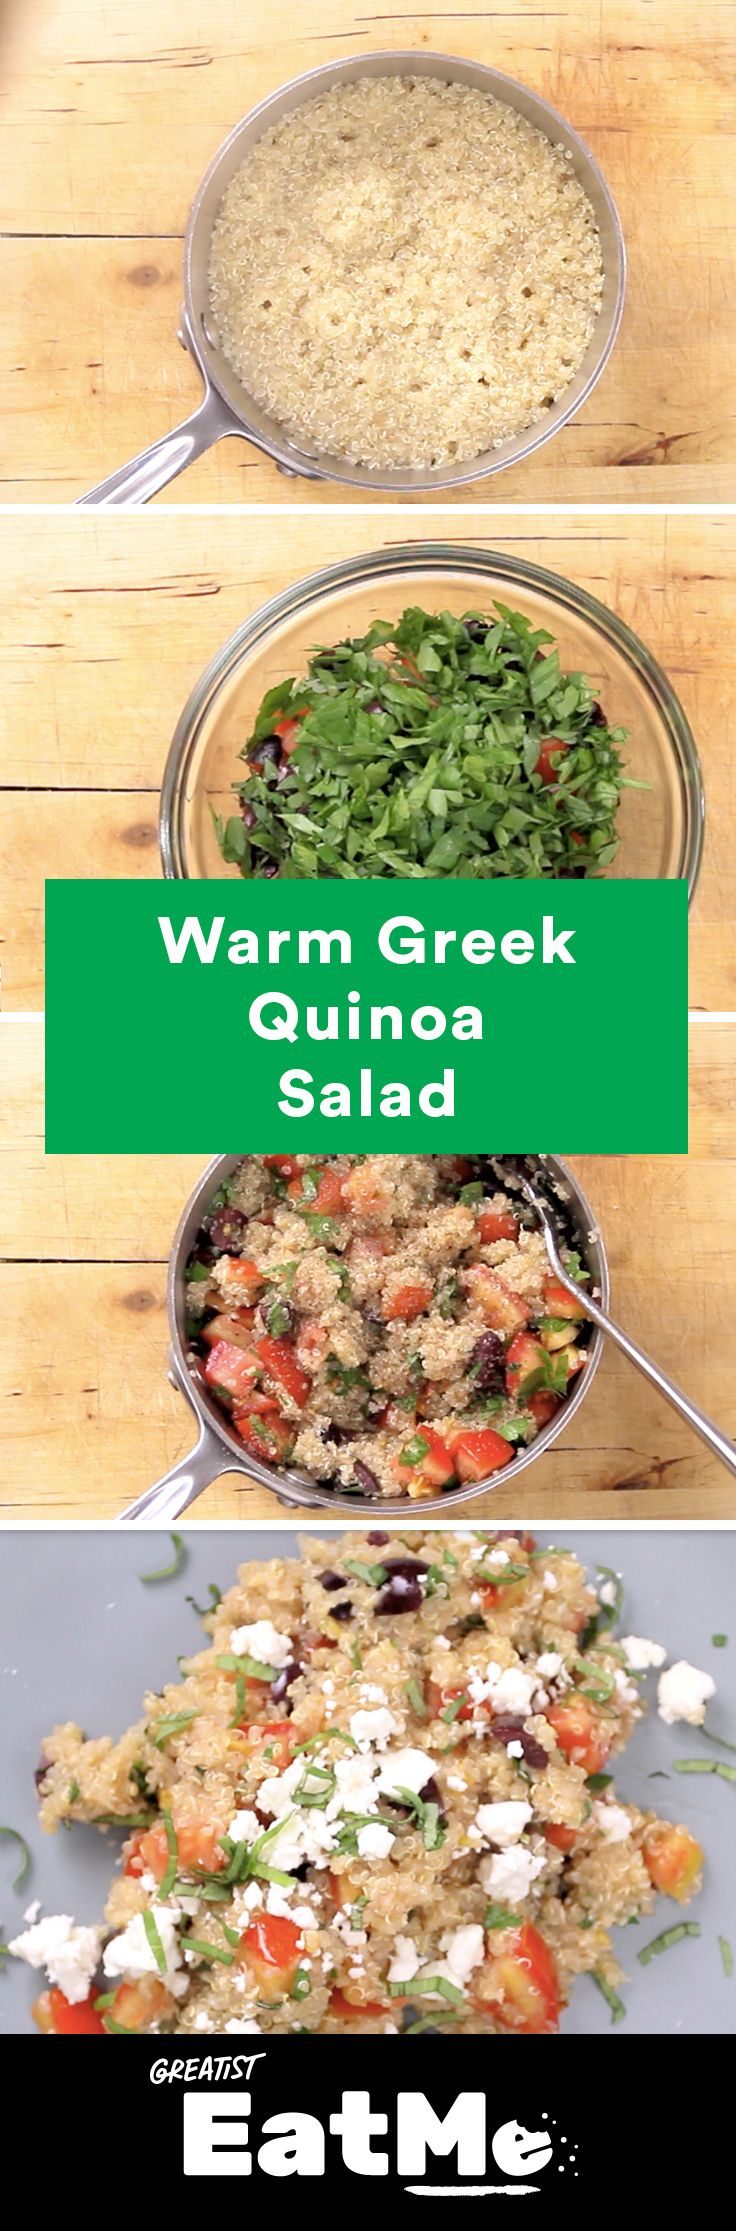 It's all Greek to us. #healthy #quinoa #salad http://greatist.com/eat/quinoa-salad-with-herbs-and-feta-recipe-video